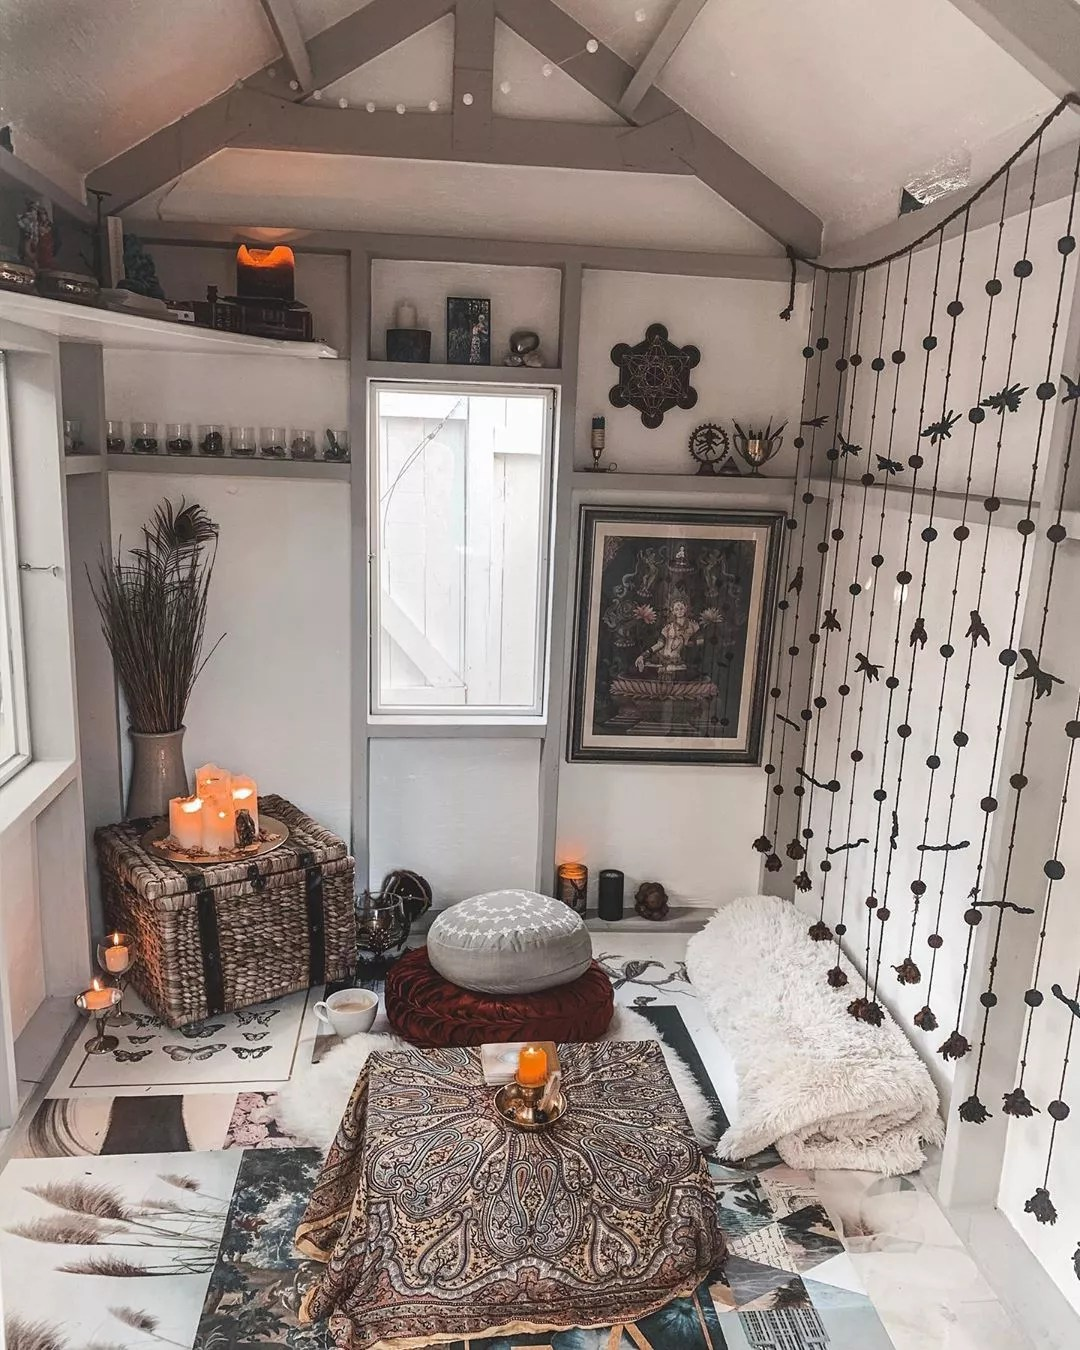 Meditation Room Set Up in a She Shed. Photo by Instagram user @jillian_tremaine